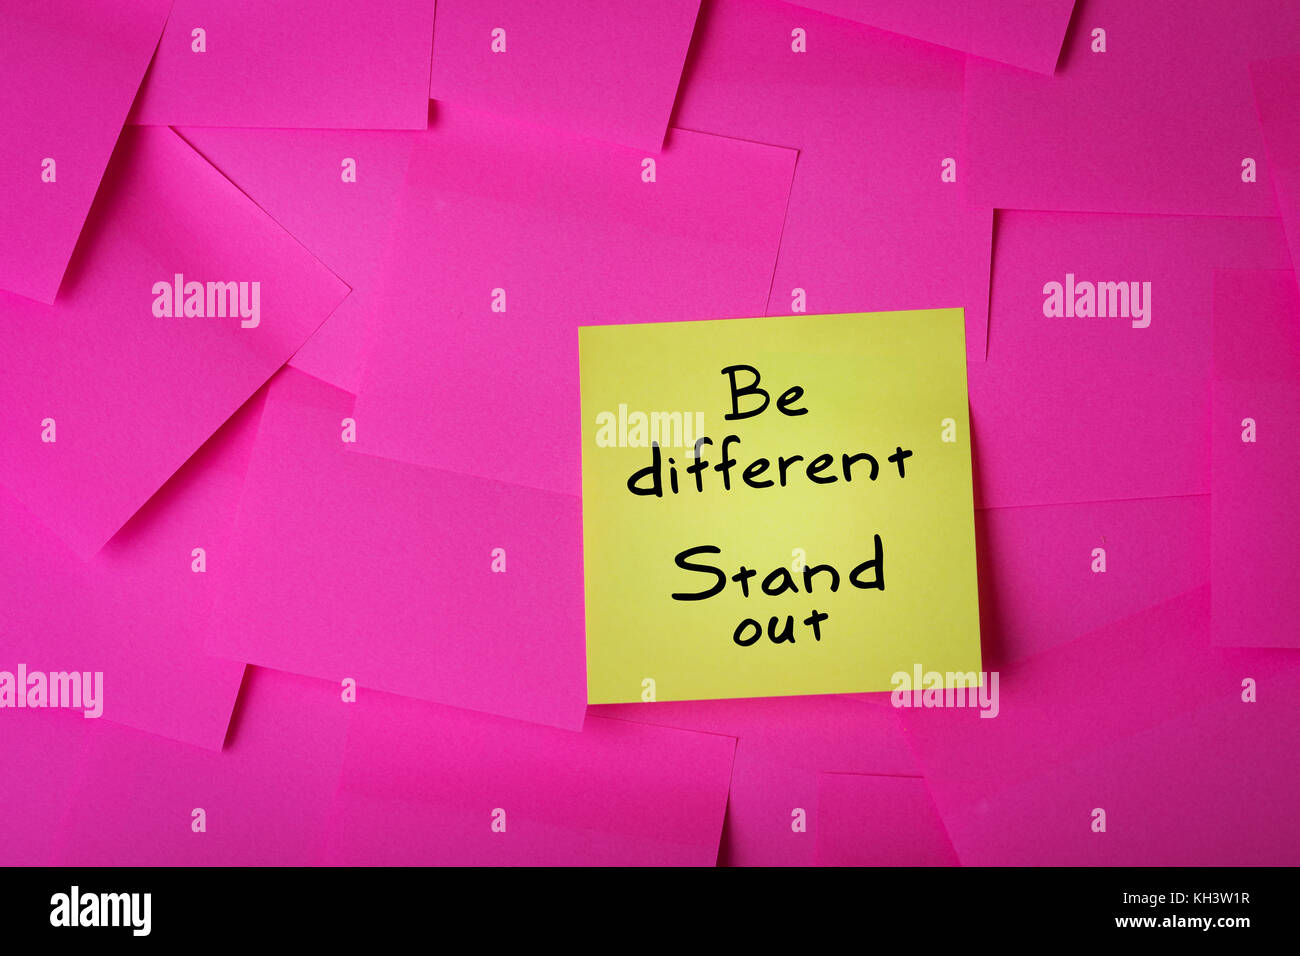 be different stand out text on yellow sticky note - Stock Image